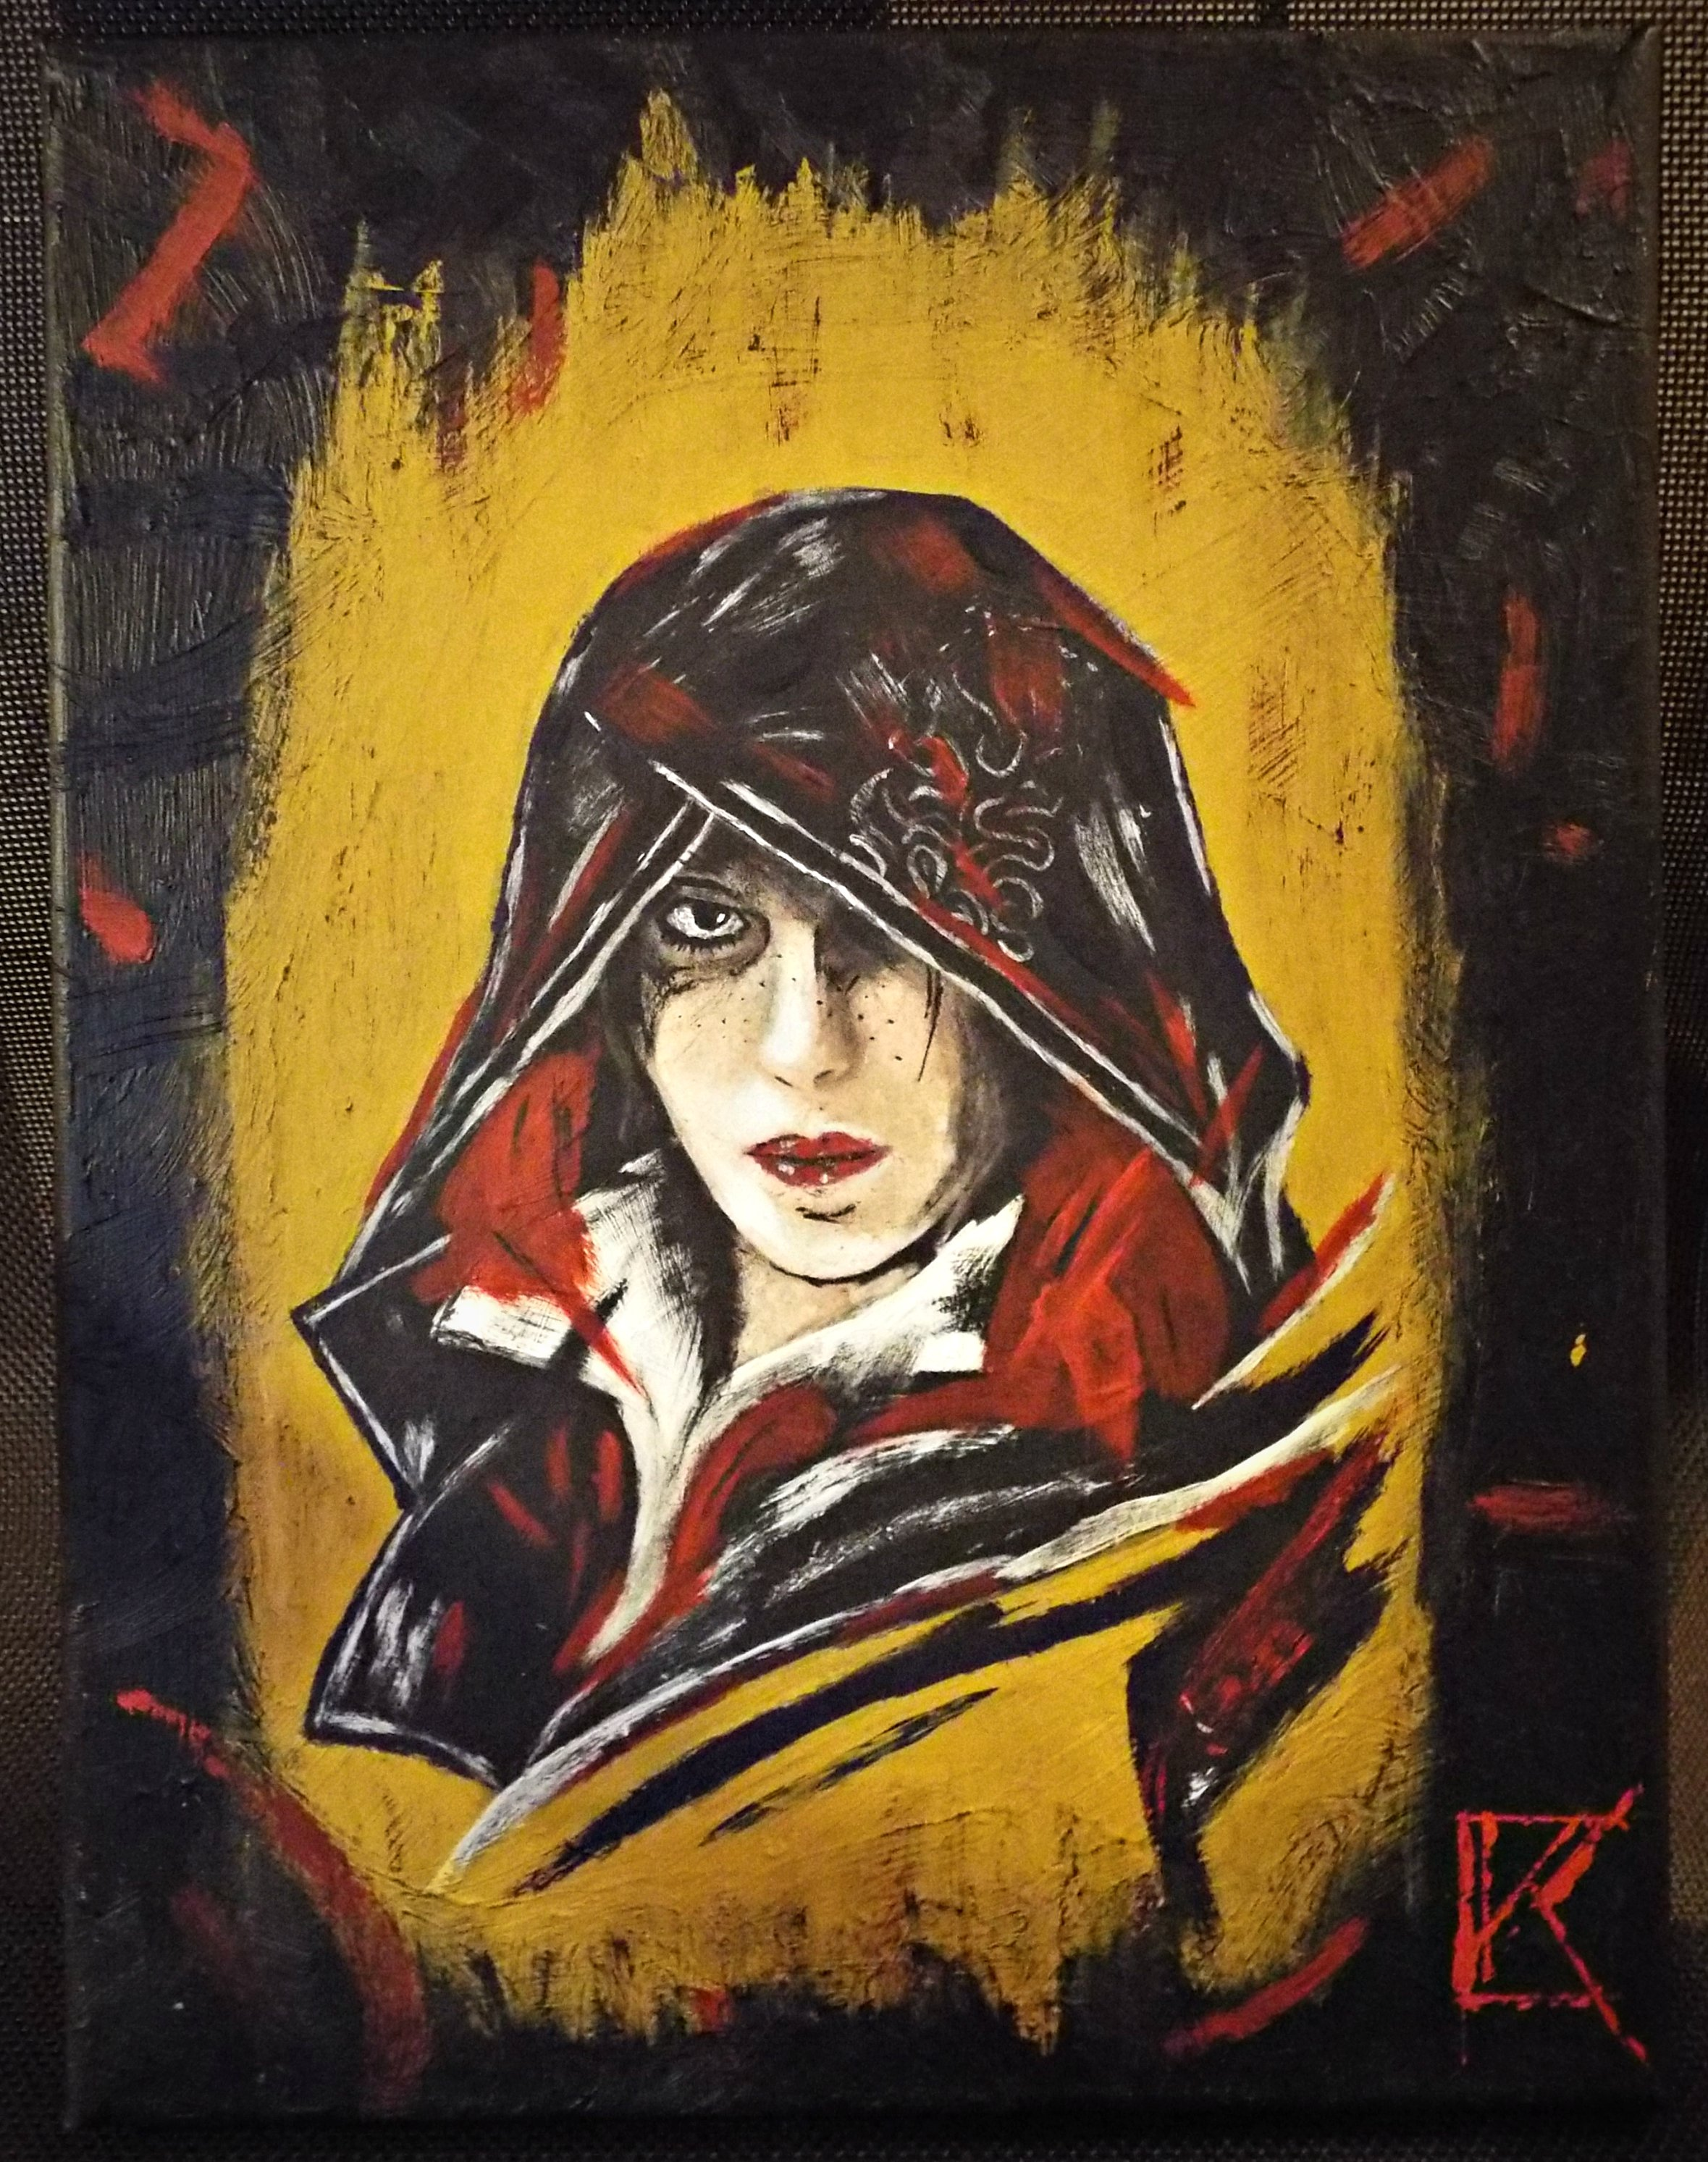 Assassin's Creed Syndicate Evie art - Изображение 1